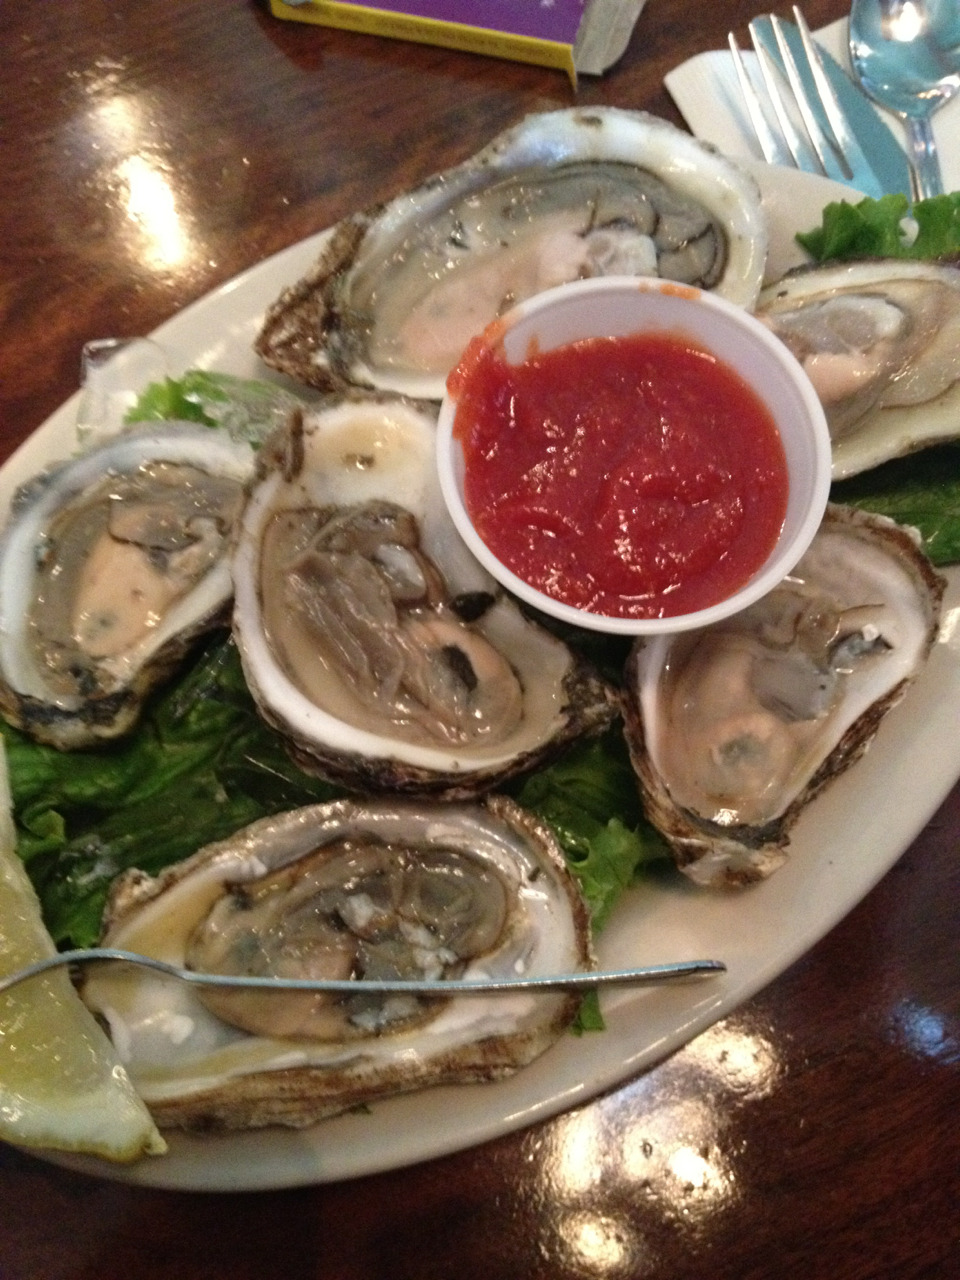 Oyster from La Forge Casino in Newport, RI